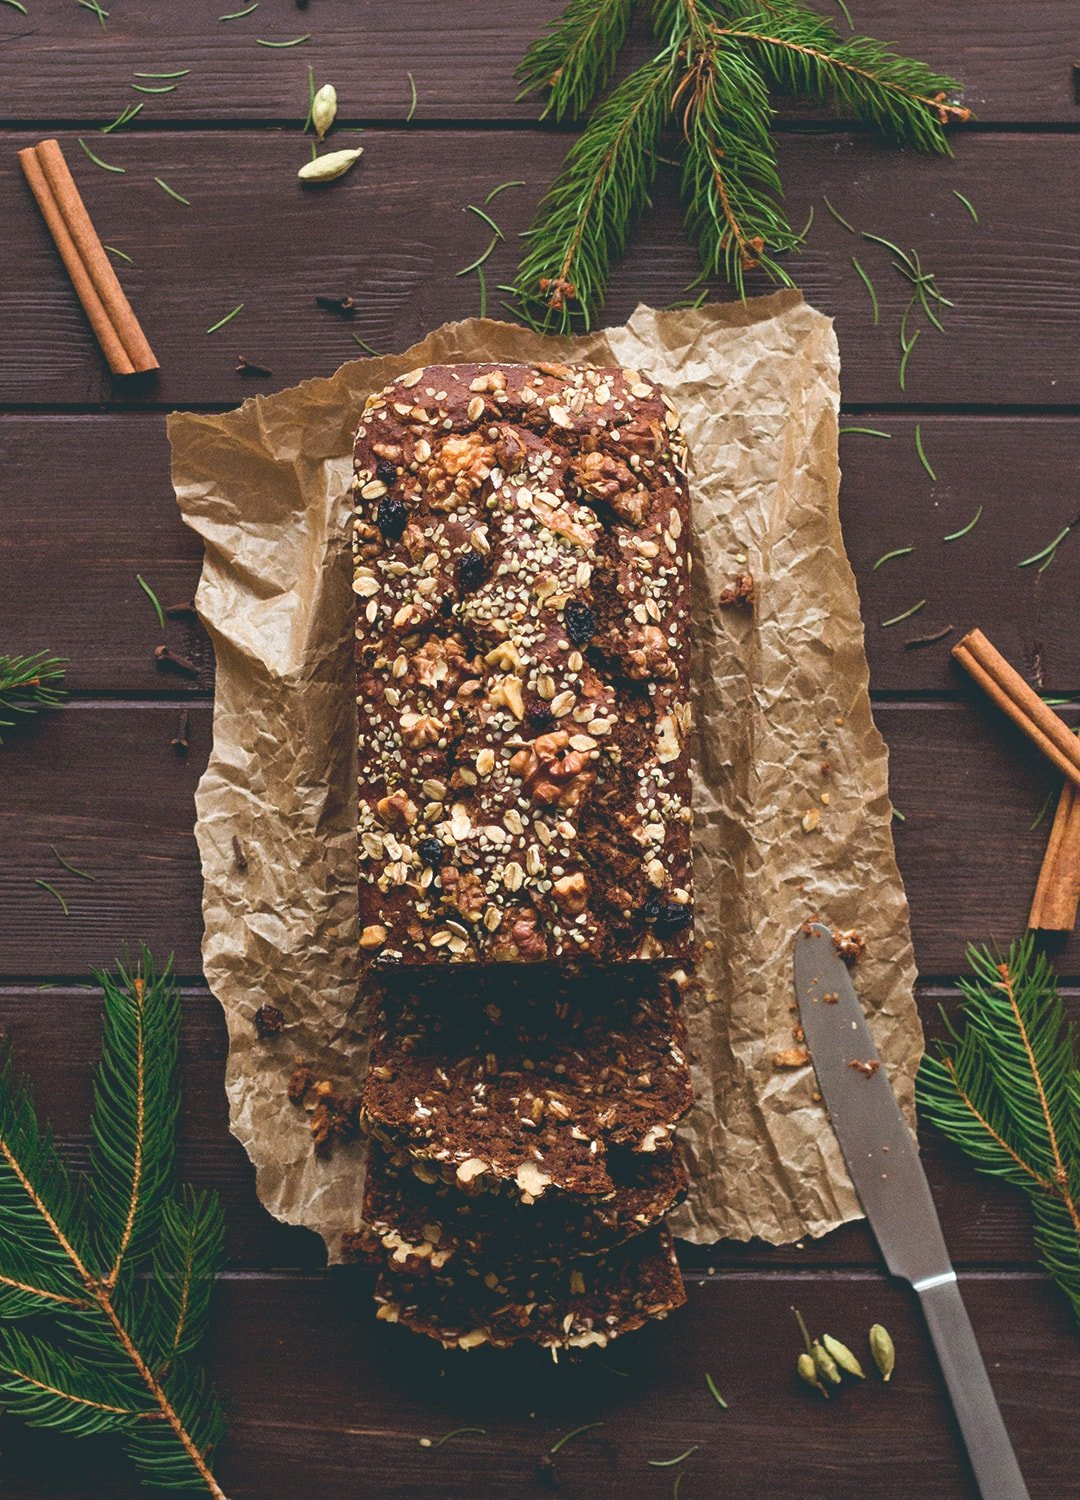 Gingerbread Banana Bread (vegan, GF) - the most delicious, comforting, healthy, and festive banana bread! I love this recipe. It's the perfect breakfast for Christmas Day morning. | thehealthfulideas.com